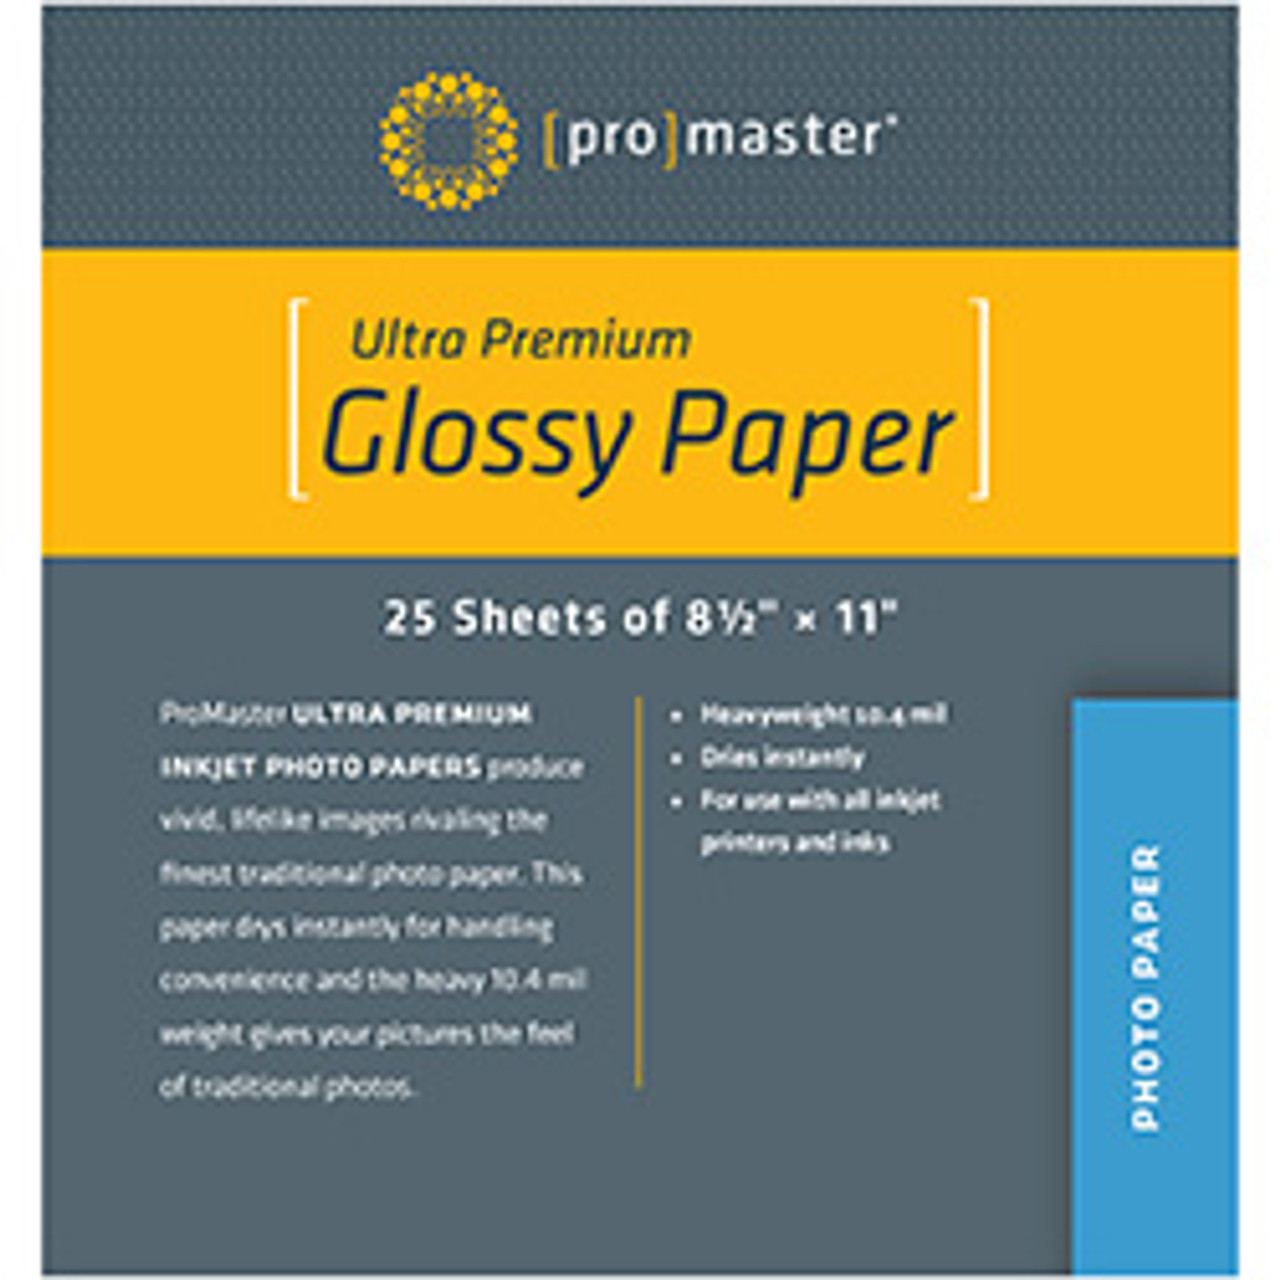 """ProMaster Ultra Premium Glossy Paper 8.5"""" x 11"""" (25 Sheets)"""